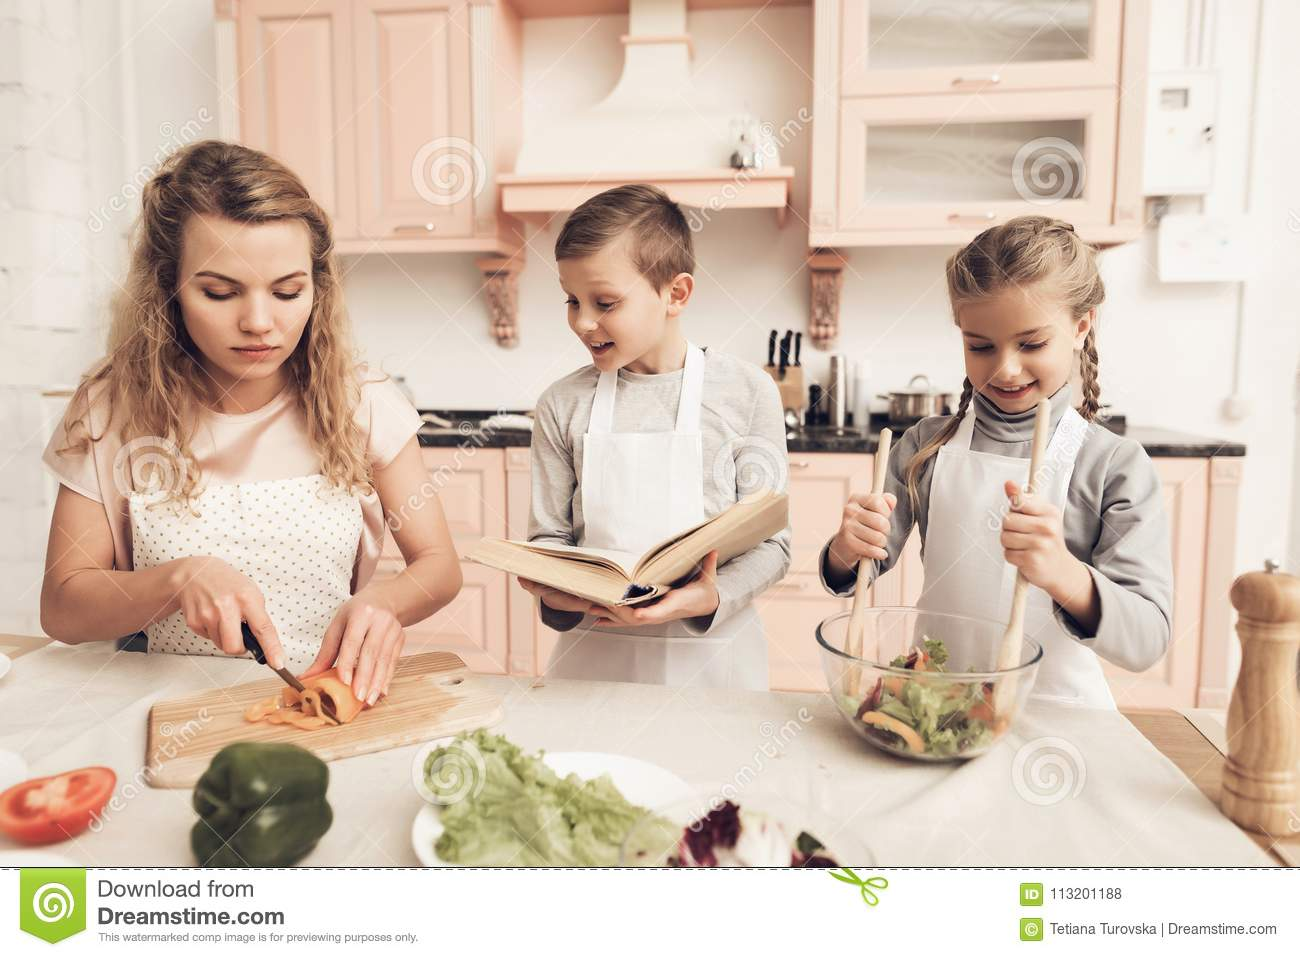 Children with mother in kitchen. Kids are helping mother to make salad.